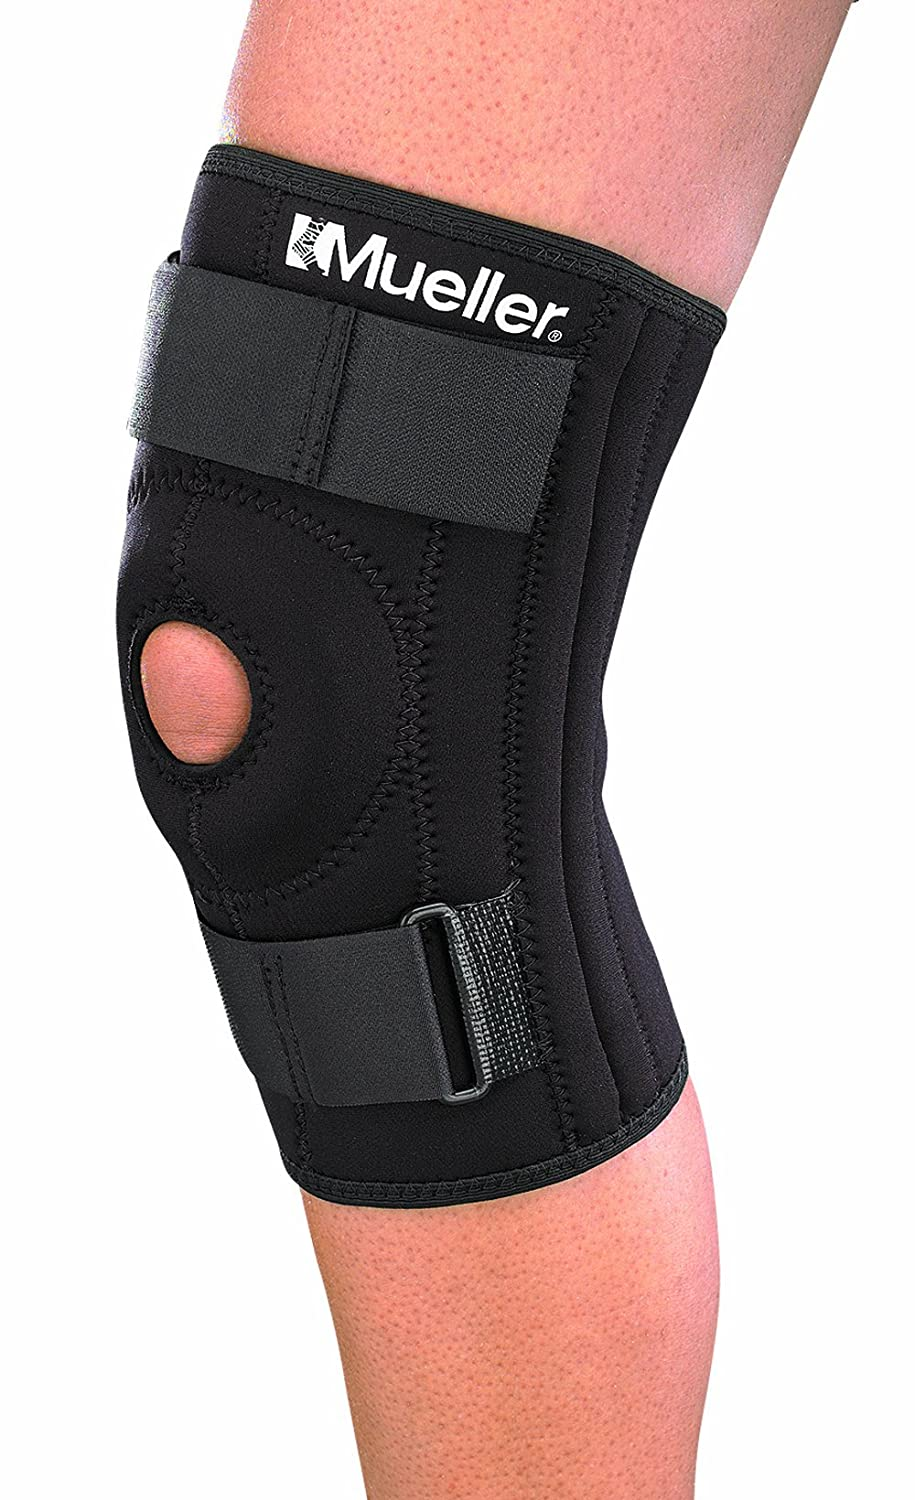 Watch - How to mueller wear max knee strap video